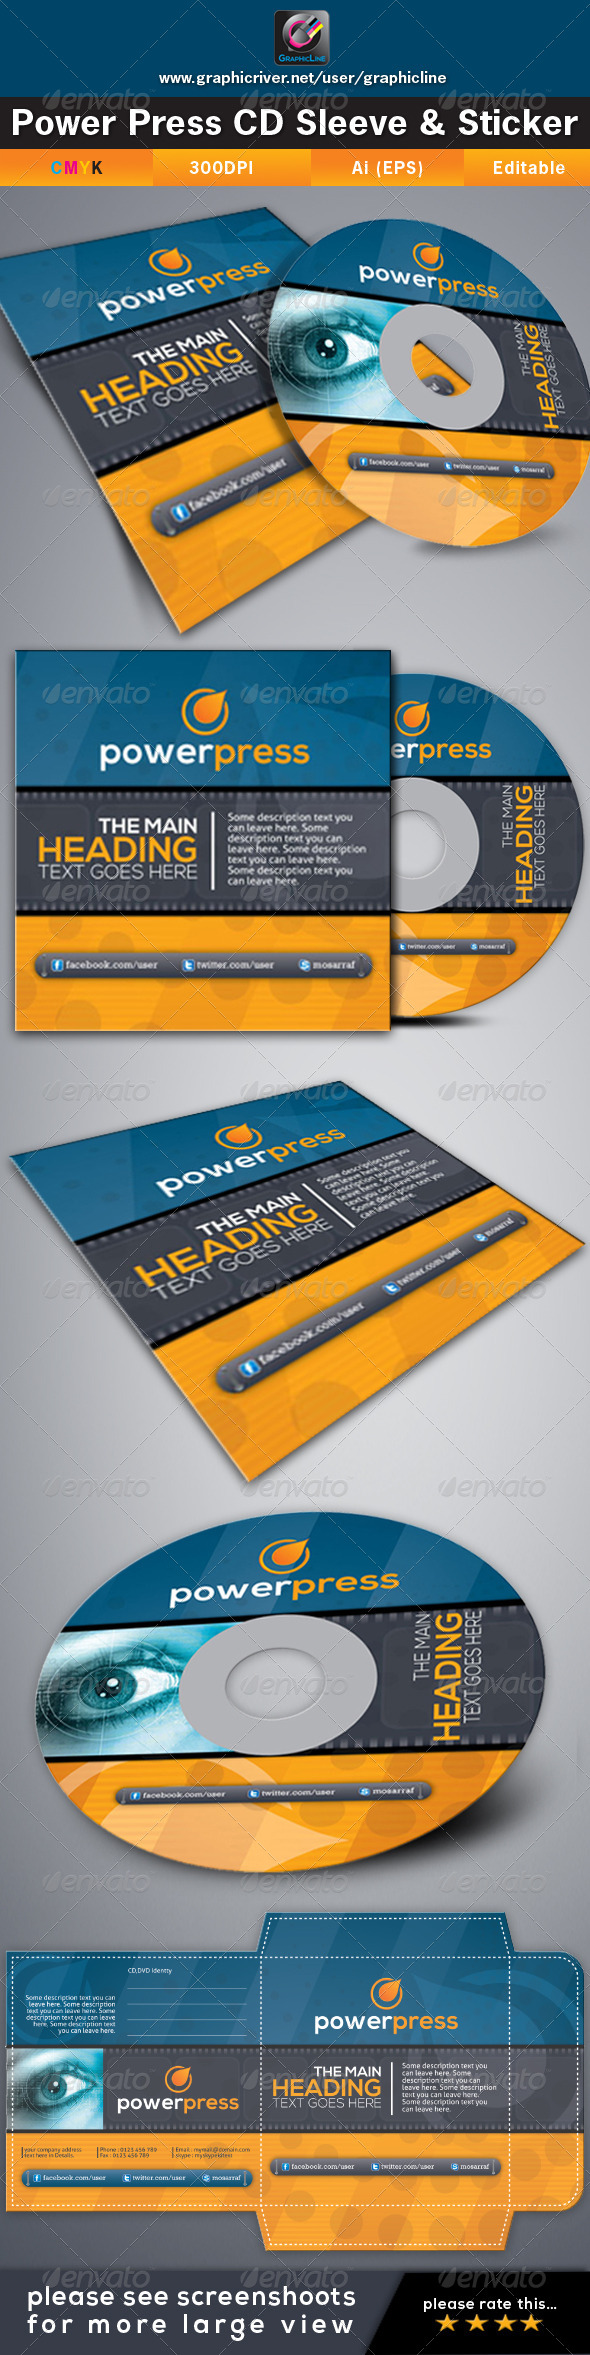 GraphicRiver Power Press CD Sleeve & Sticker 4410178